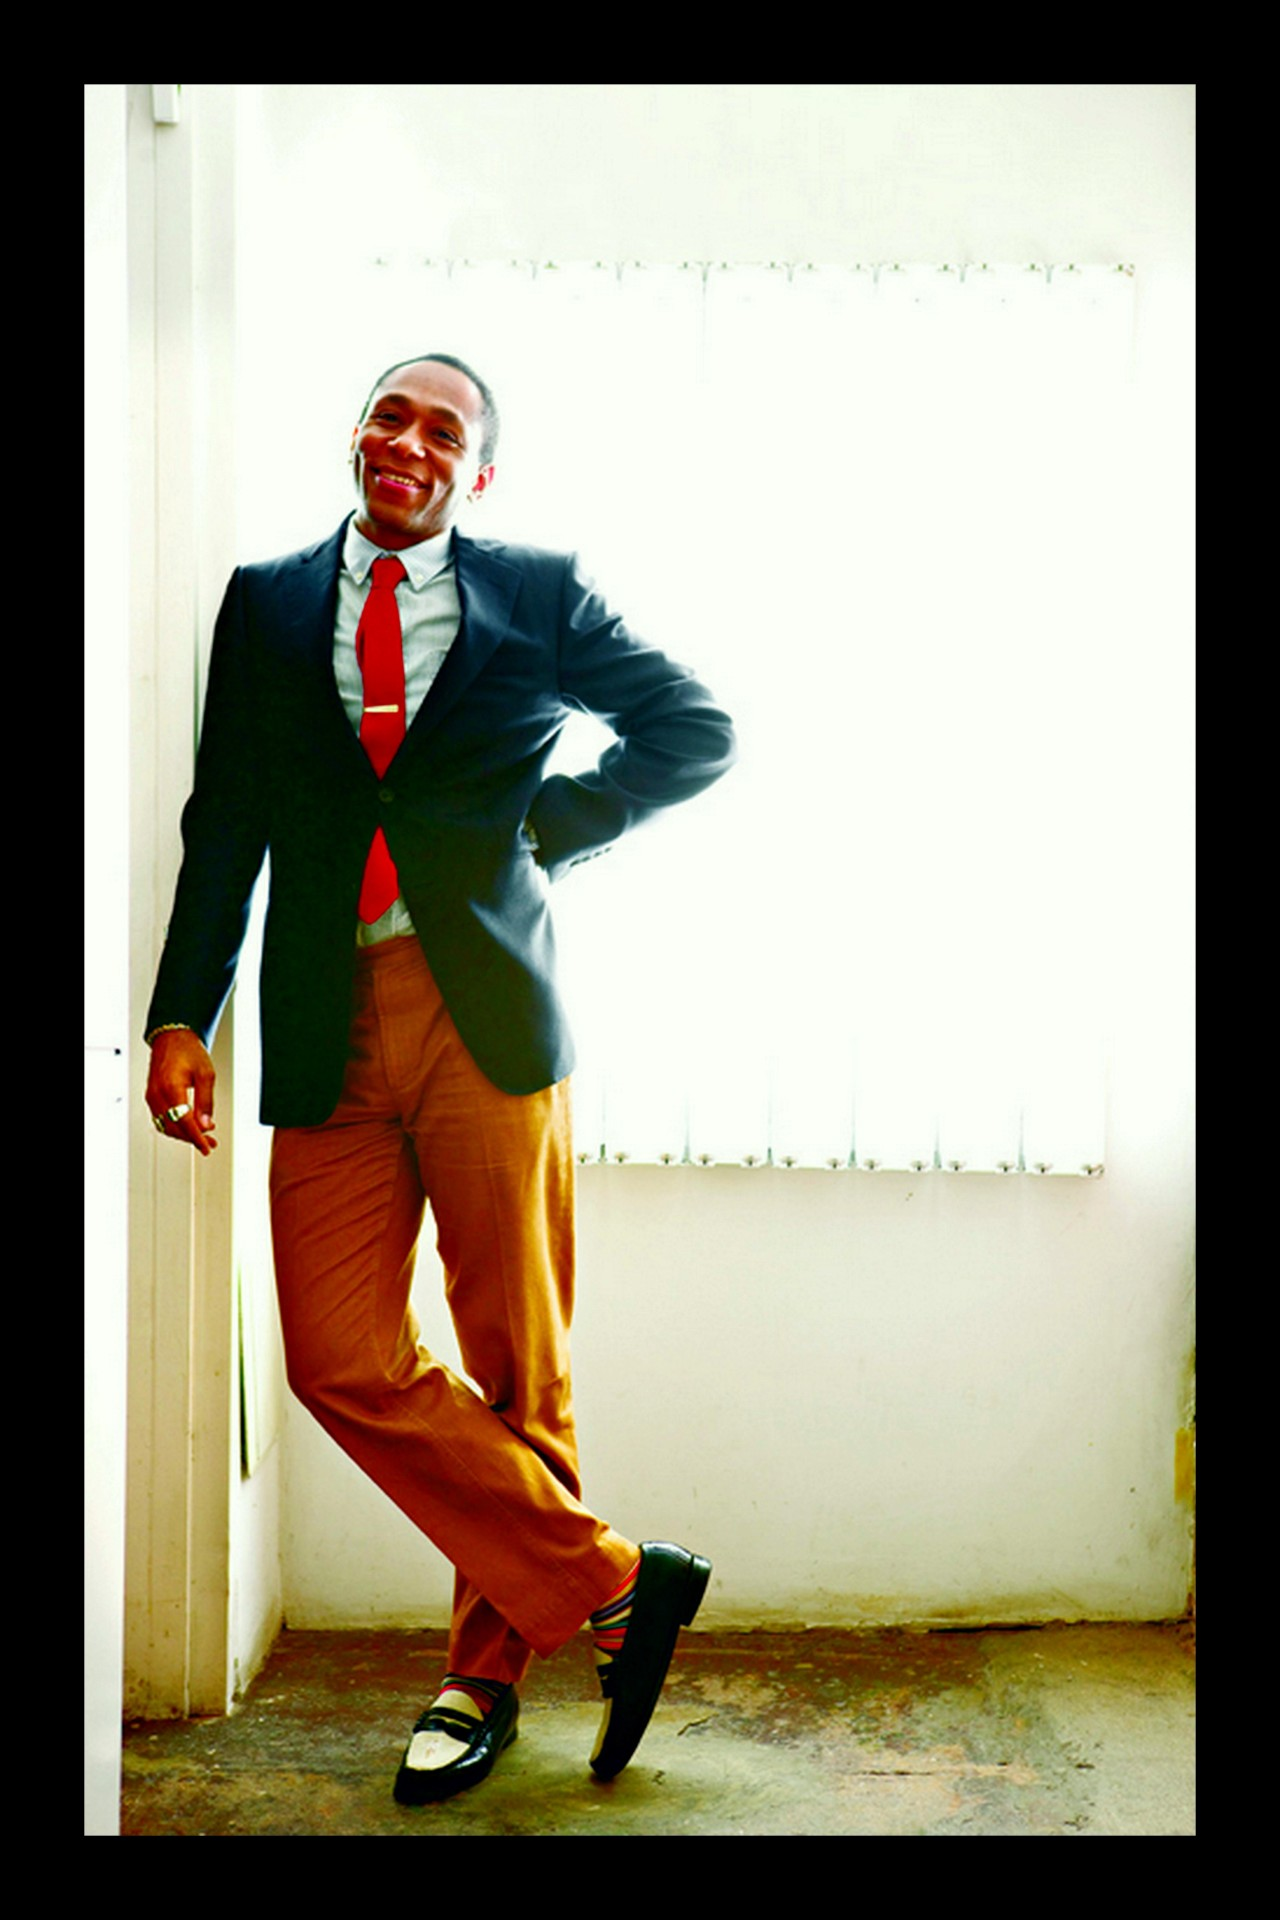 Speaking of Yasiin Bey, we absolutely love his style: classic & dapper.